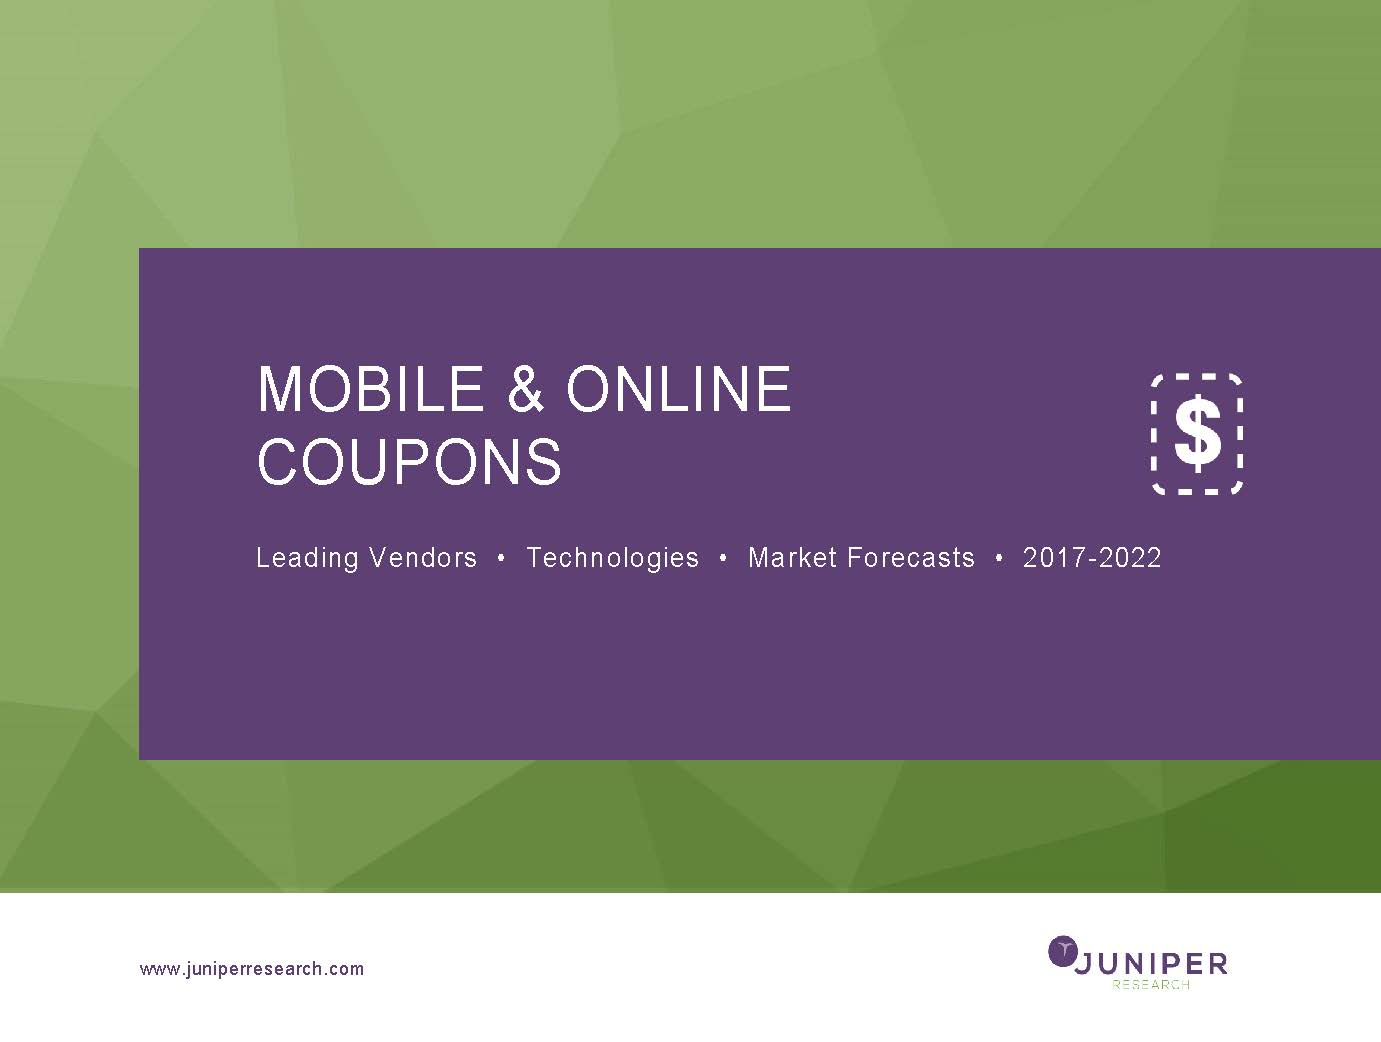 Mobile & Online Coupons